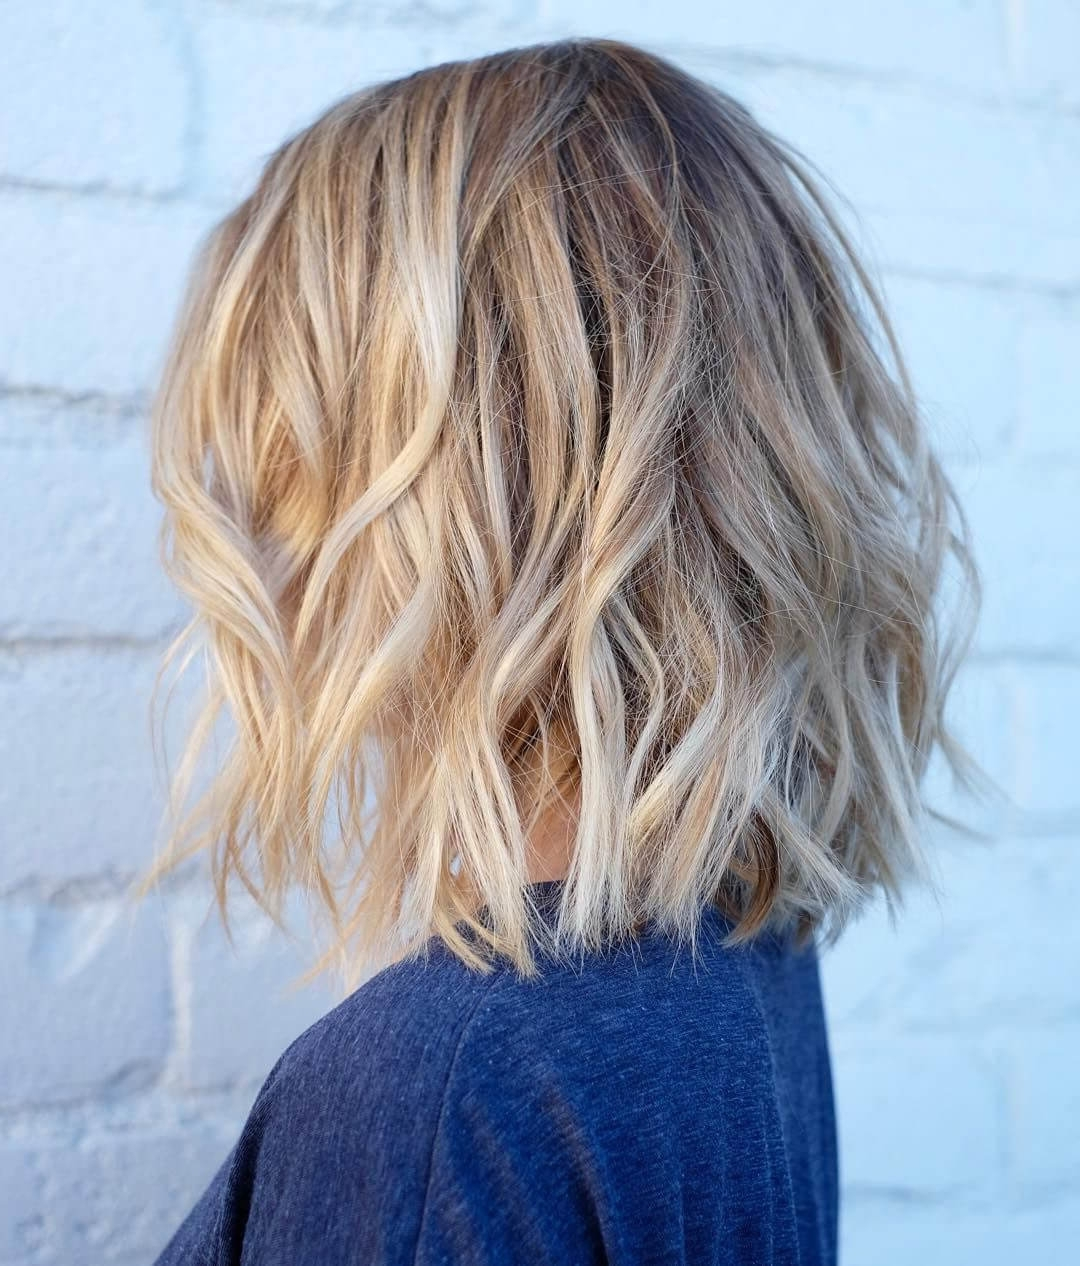 50 Fresh Short Blonde Hair Ideas To Update Your Style In 2018 Inside Best And Newest Blonde Pixie Hairstyles With Short Angled Layers (Gallery 18 of 20)